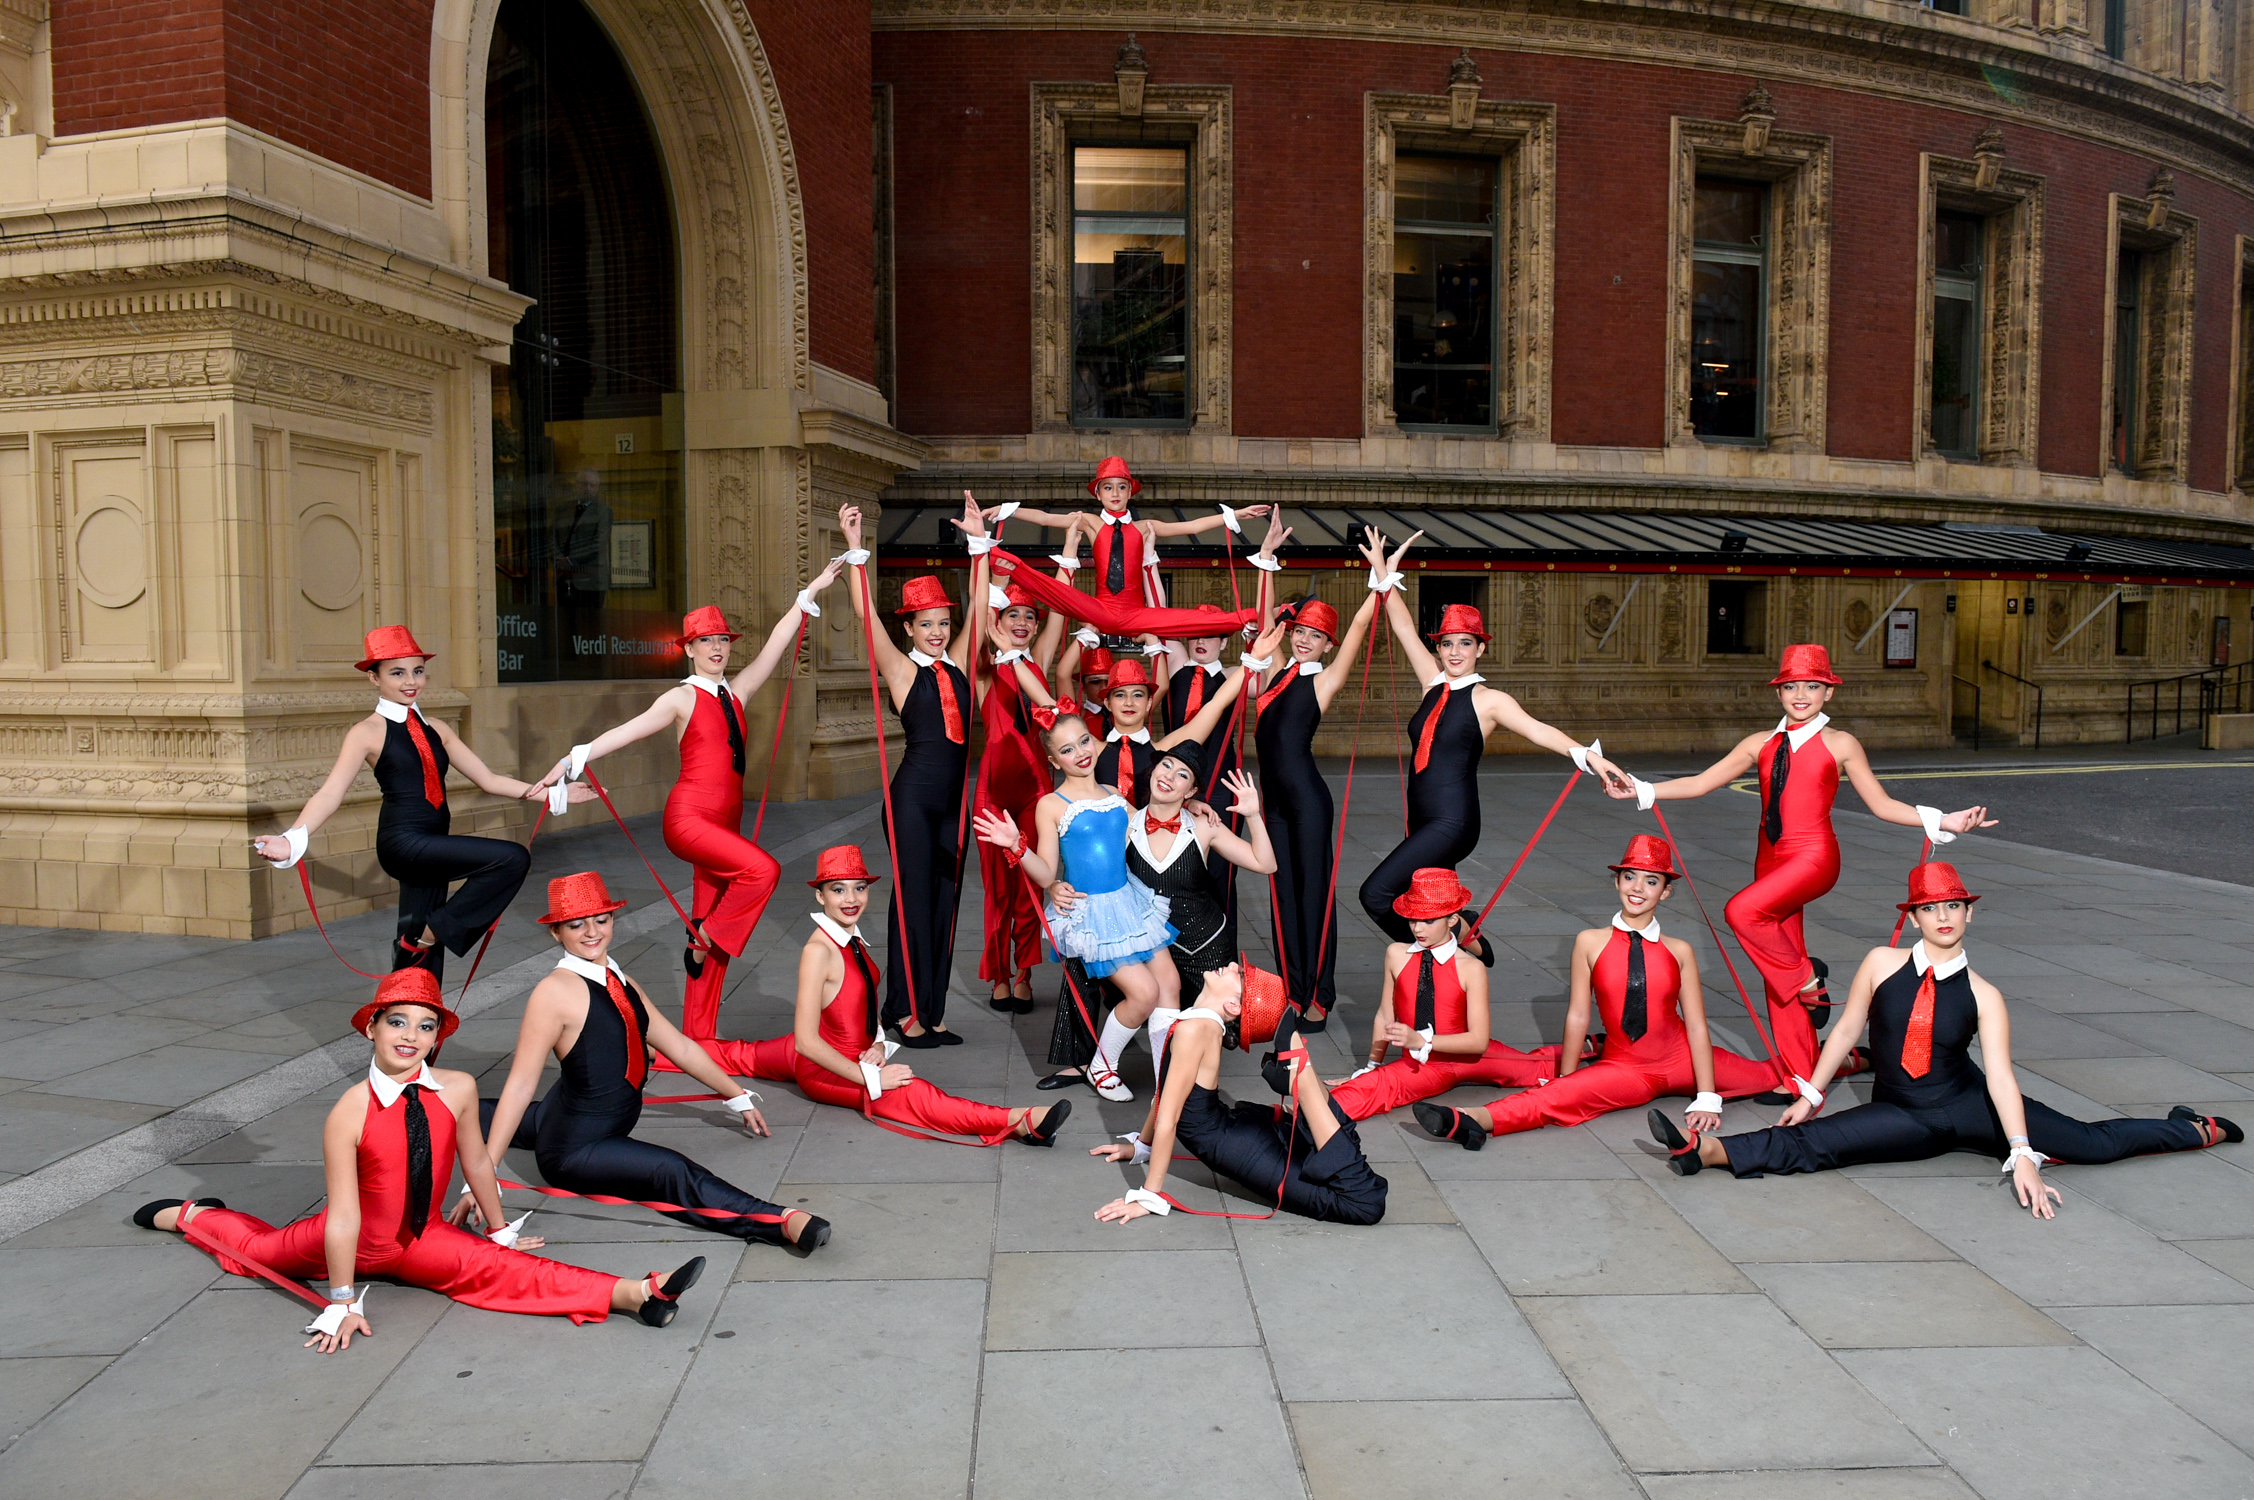 Dance Proms 2016 to send at the on the 30/10/2016. Photo: David Tett